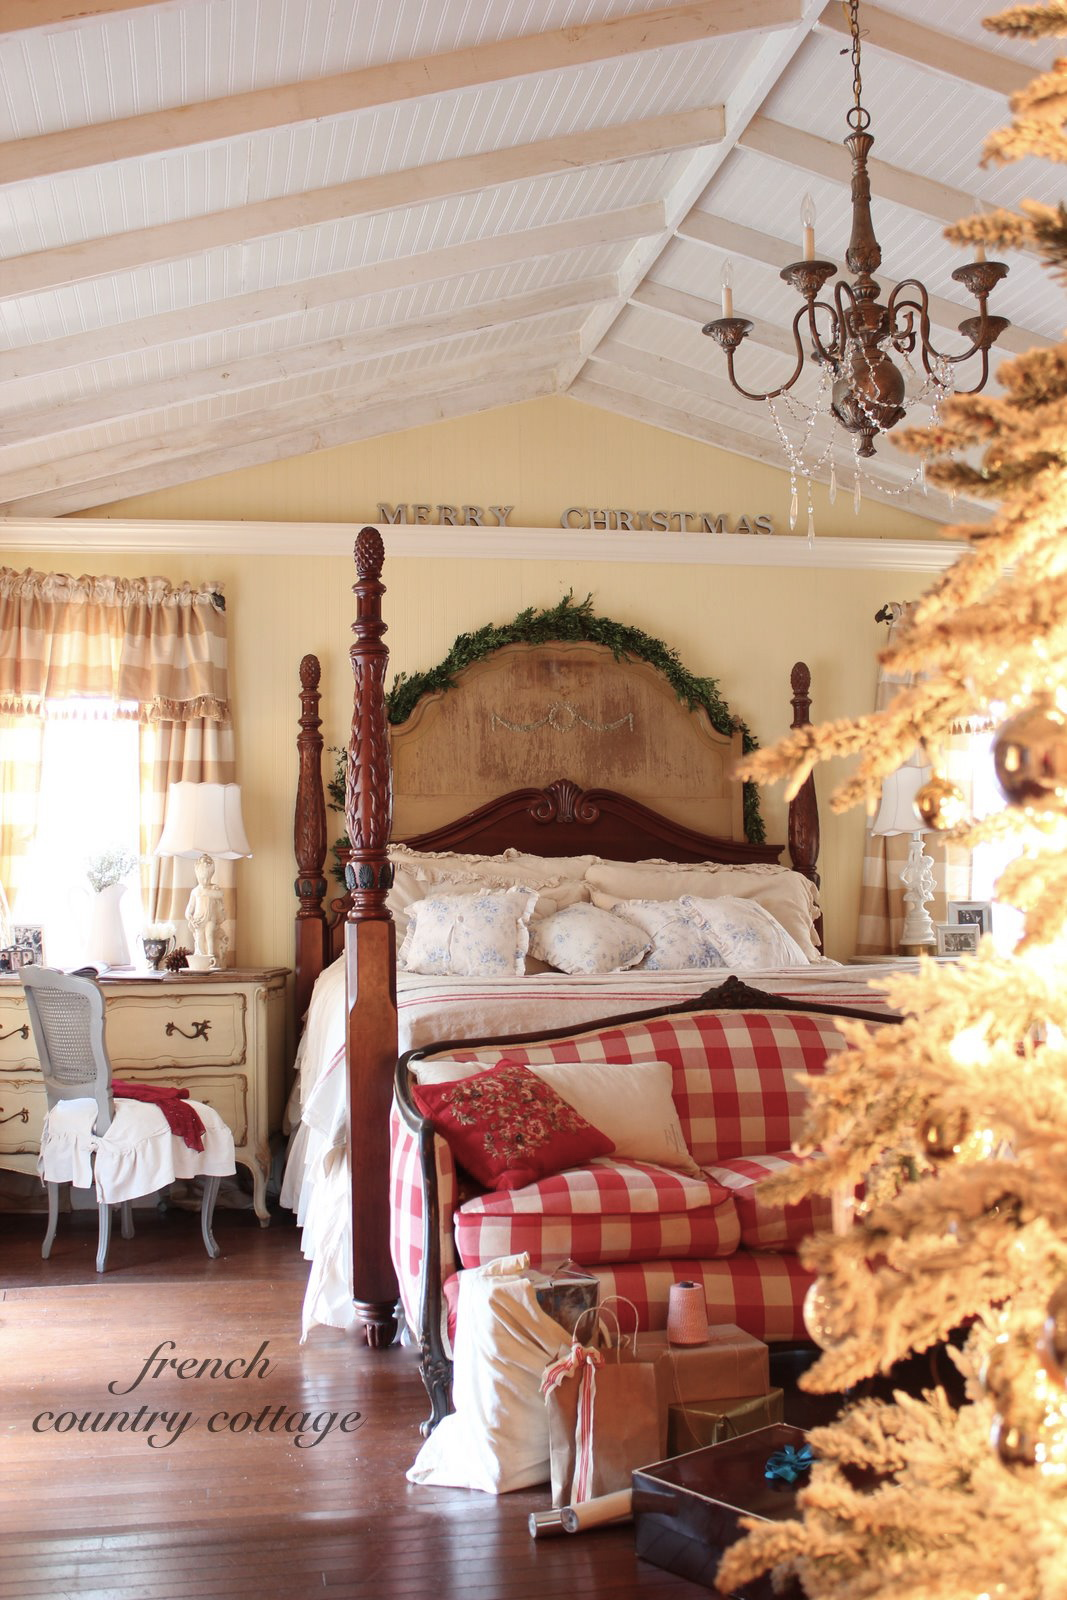 Joyeux Noel Bedroom - FRENCH COUNTRY COTTAGE